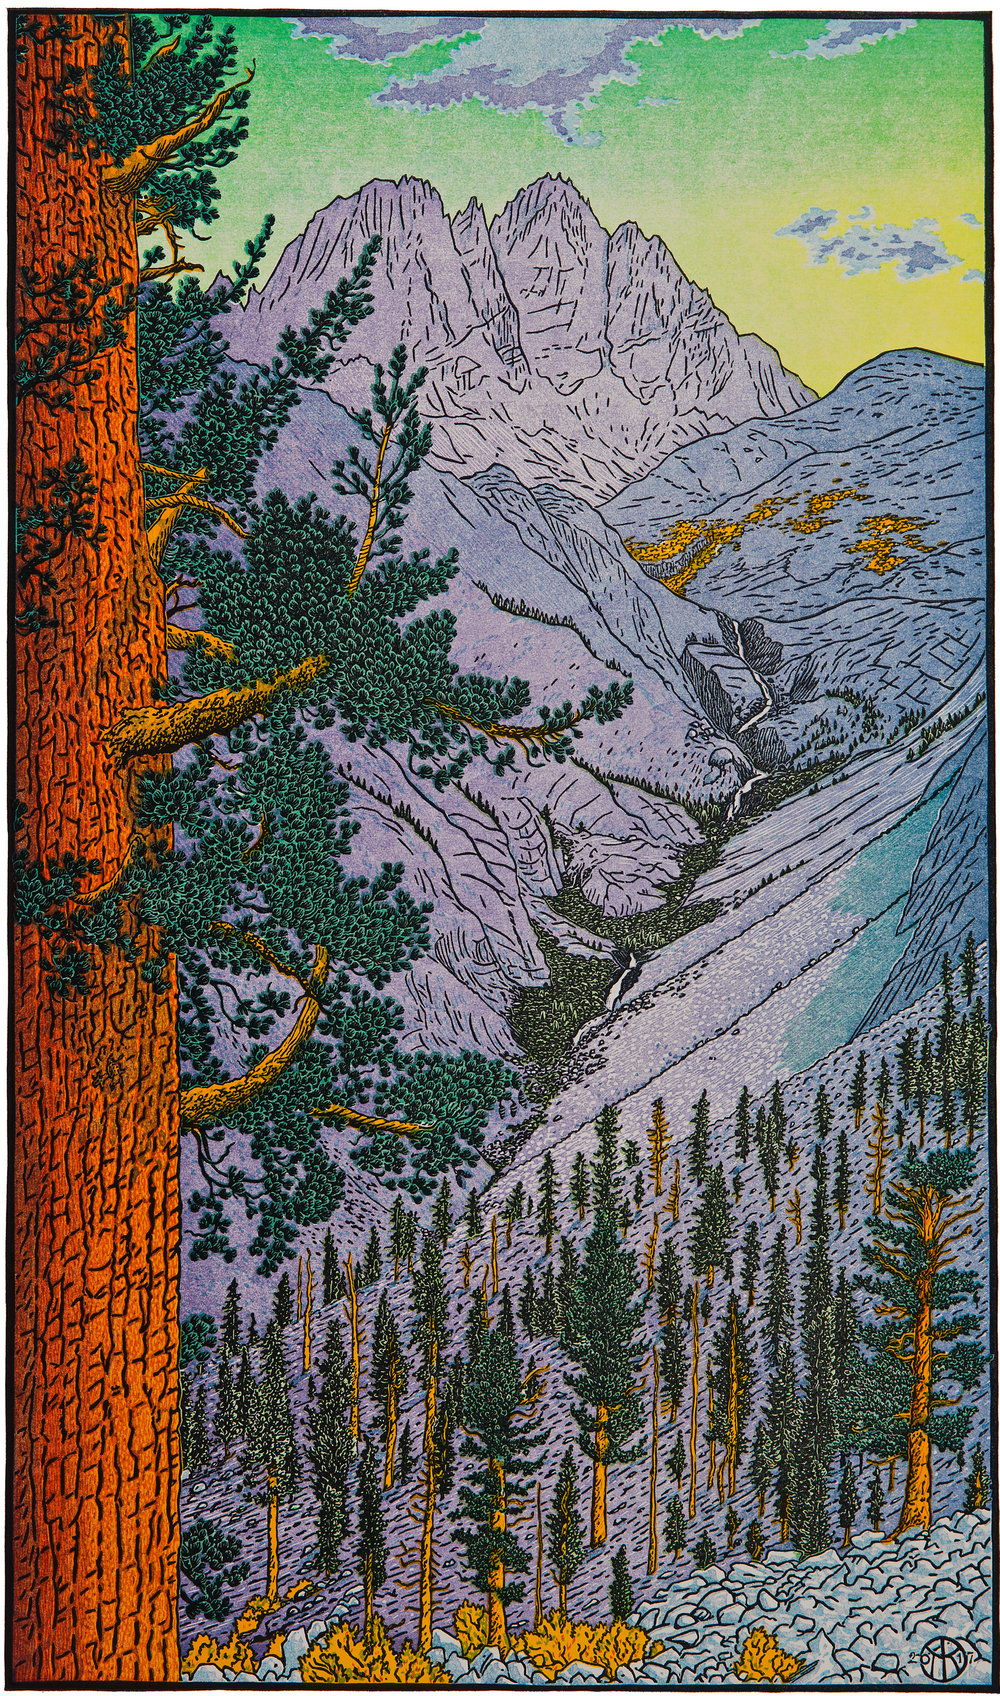 """Middle Palisade Peak & Western White Pine"": 12 color-layer multi-block reduction cut completed October 2017. The view of Middle Palisade Peak (14,012') is from above the mouth of Cataract Creek, looking at the descending waterfalls of Palisade Creek along which the John Muir Trail's Golden Staircase climbs several thousand feet to the Palisade Lakes. This print was produced from a ketch made on site in 2012. Scenes from some steps in the carving and printing process at right:"